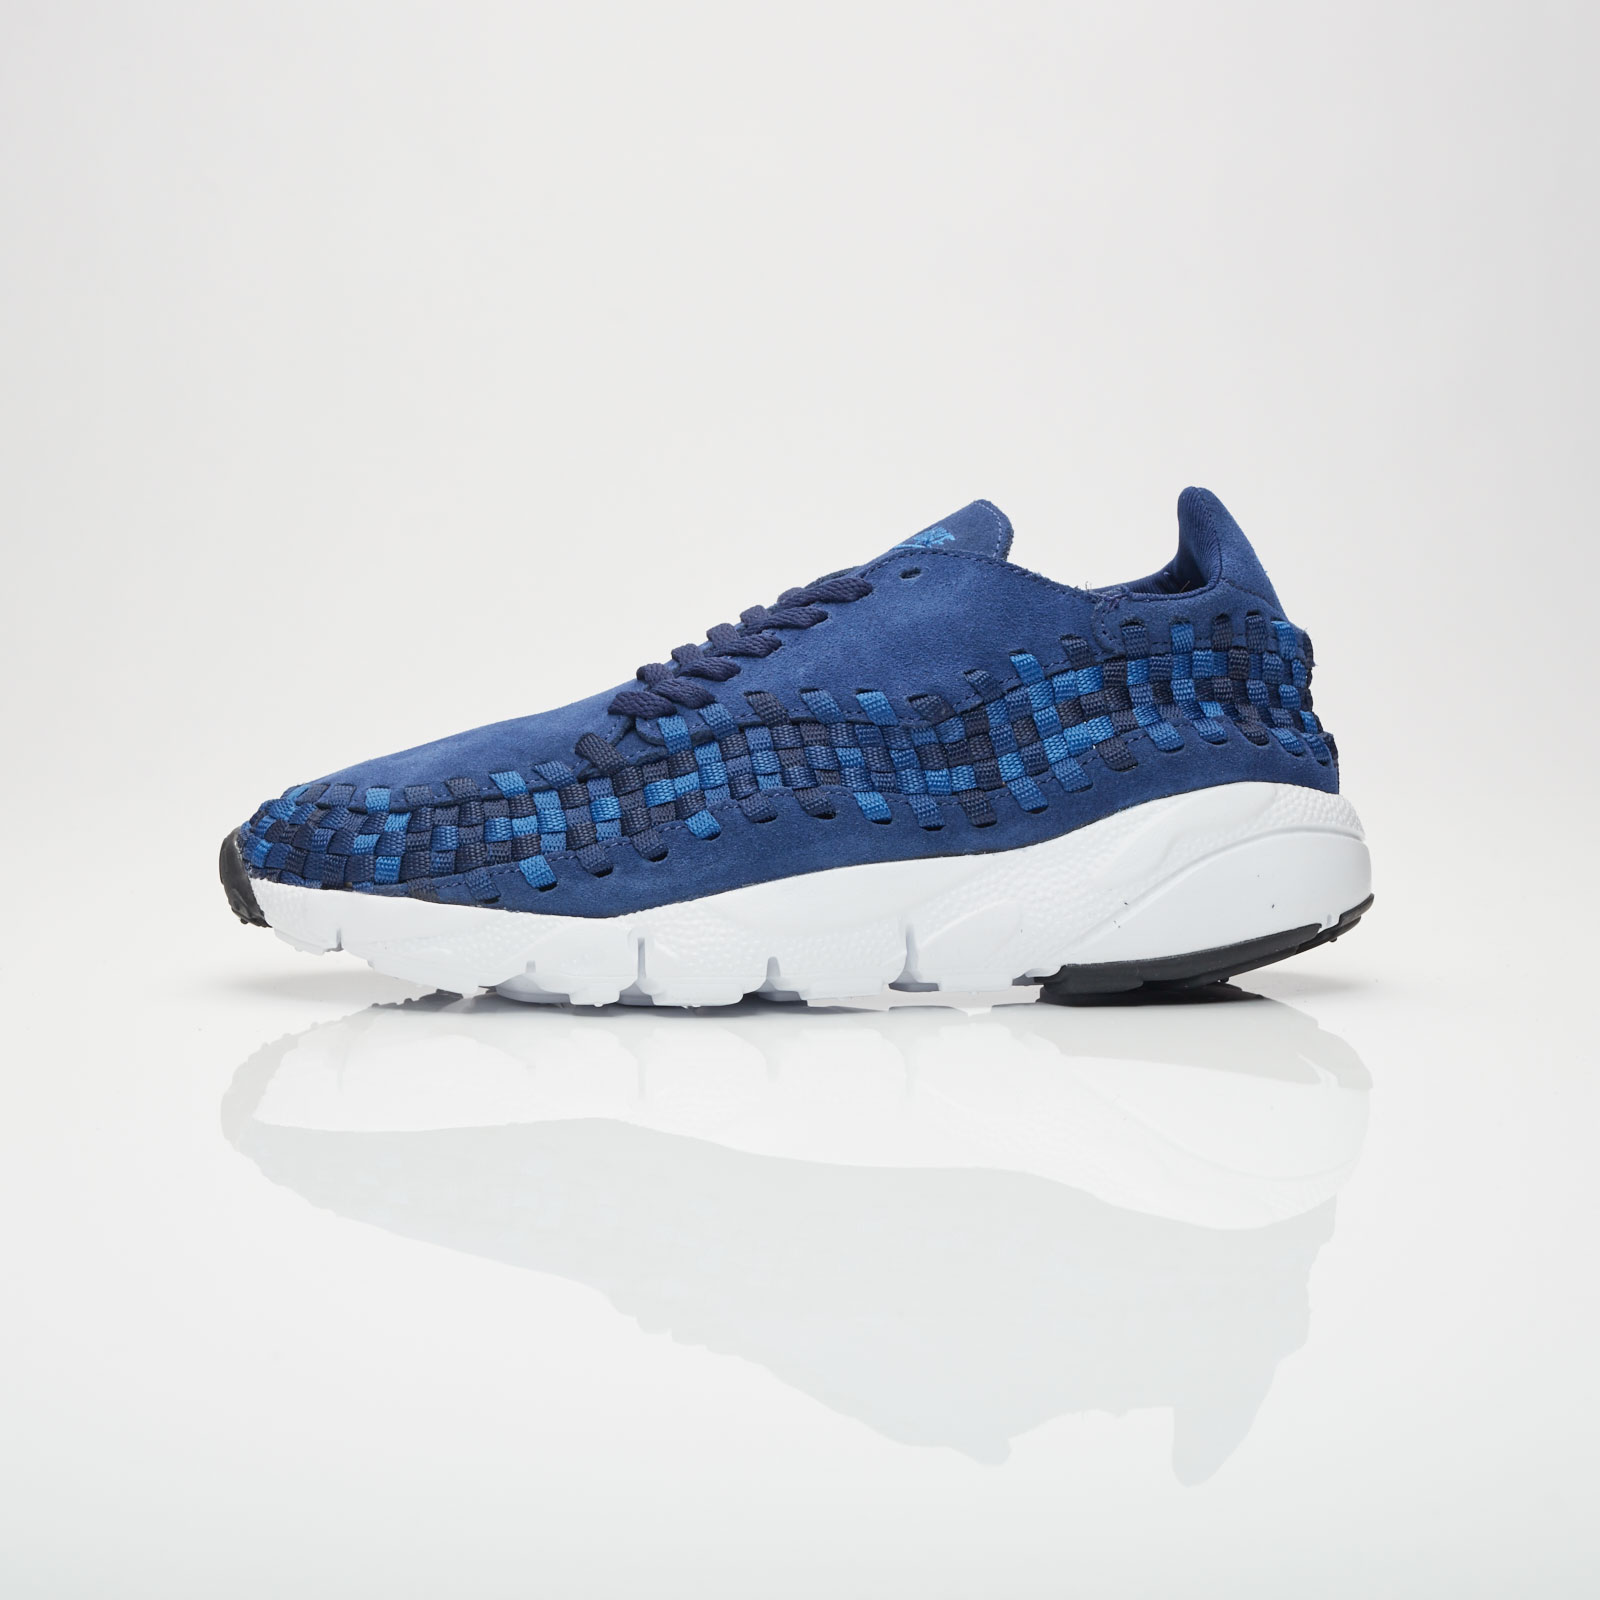 7689c1abf73 Nike Air Footscape Woven NM - 875797-400 - Sneakersnstuff